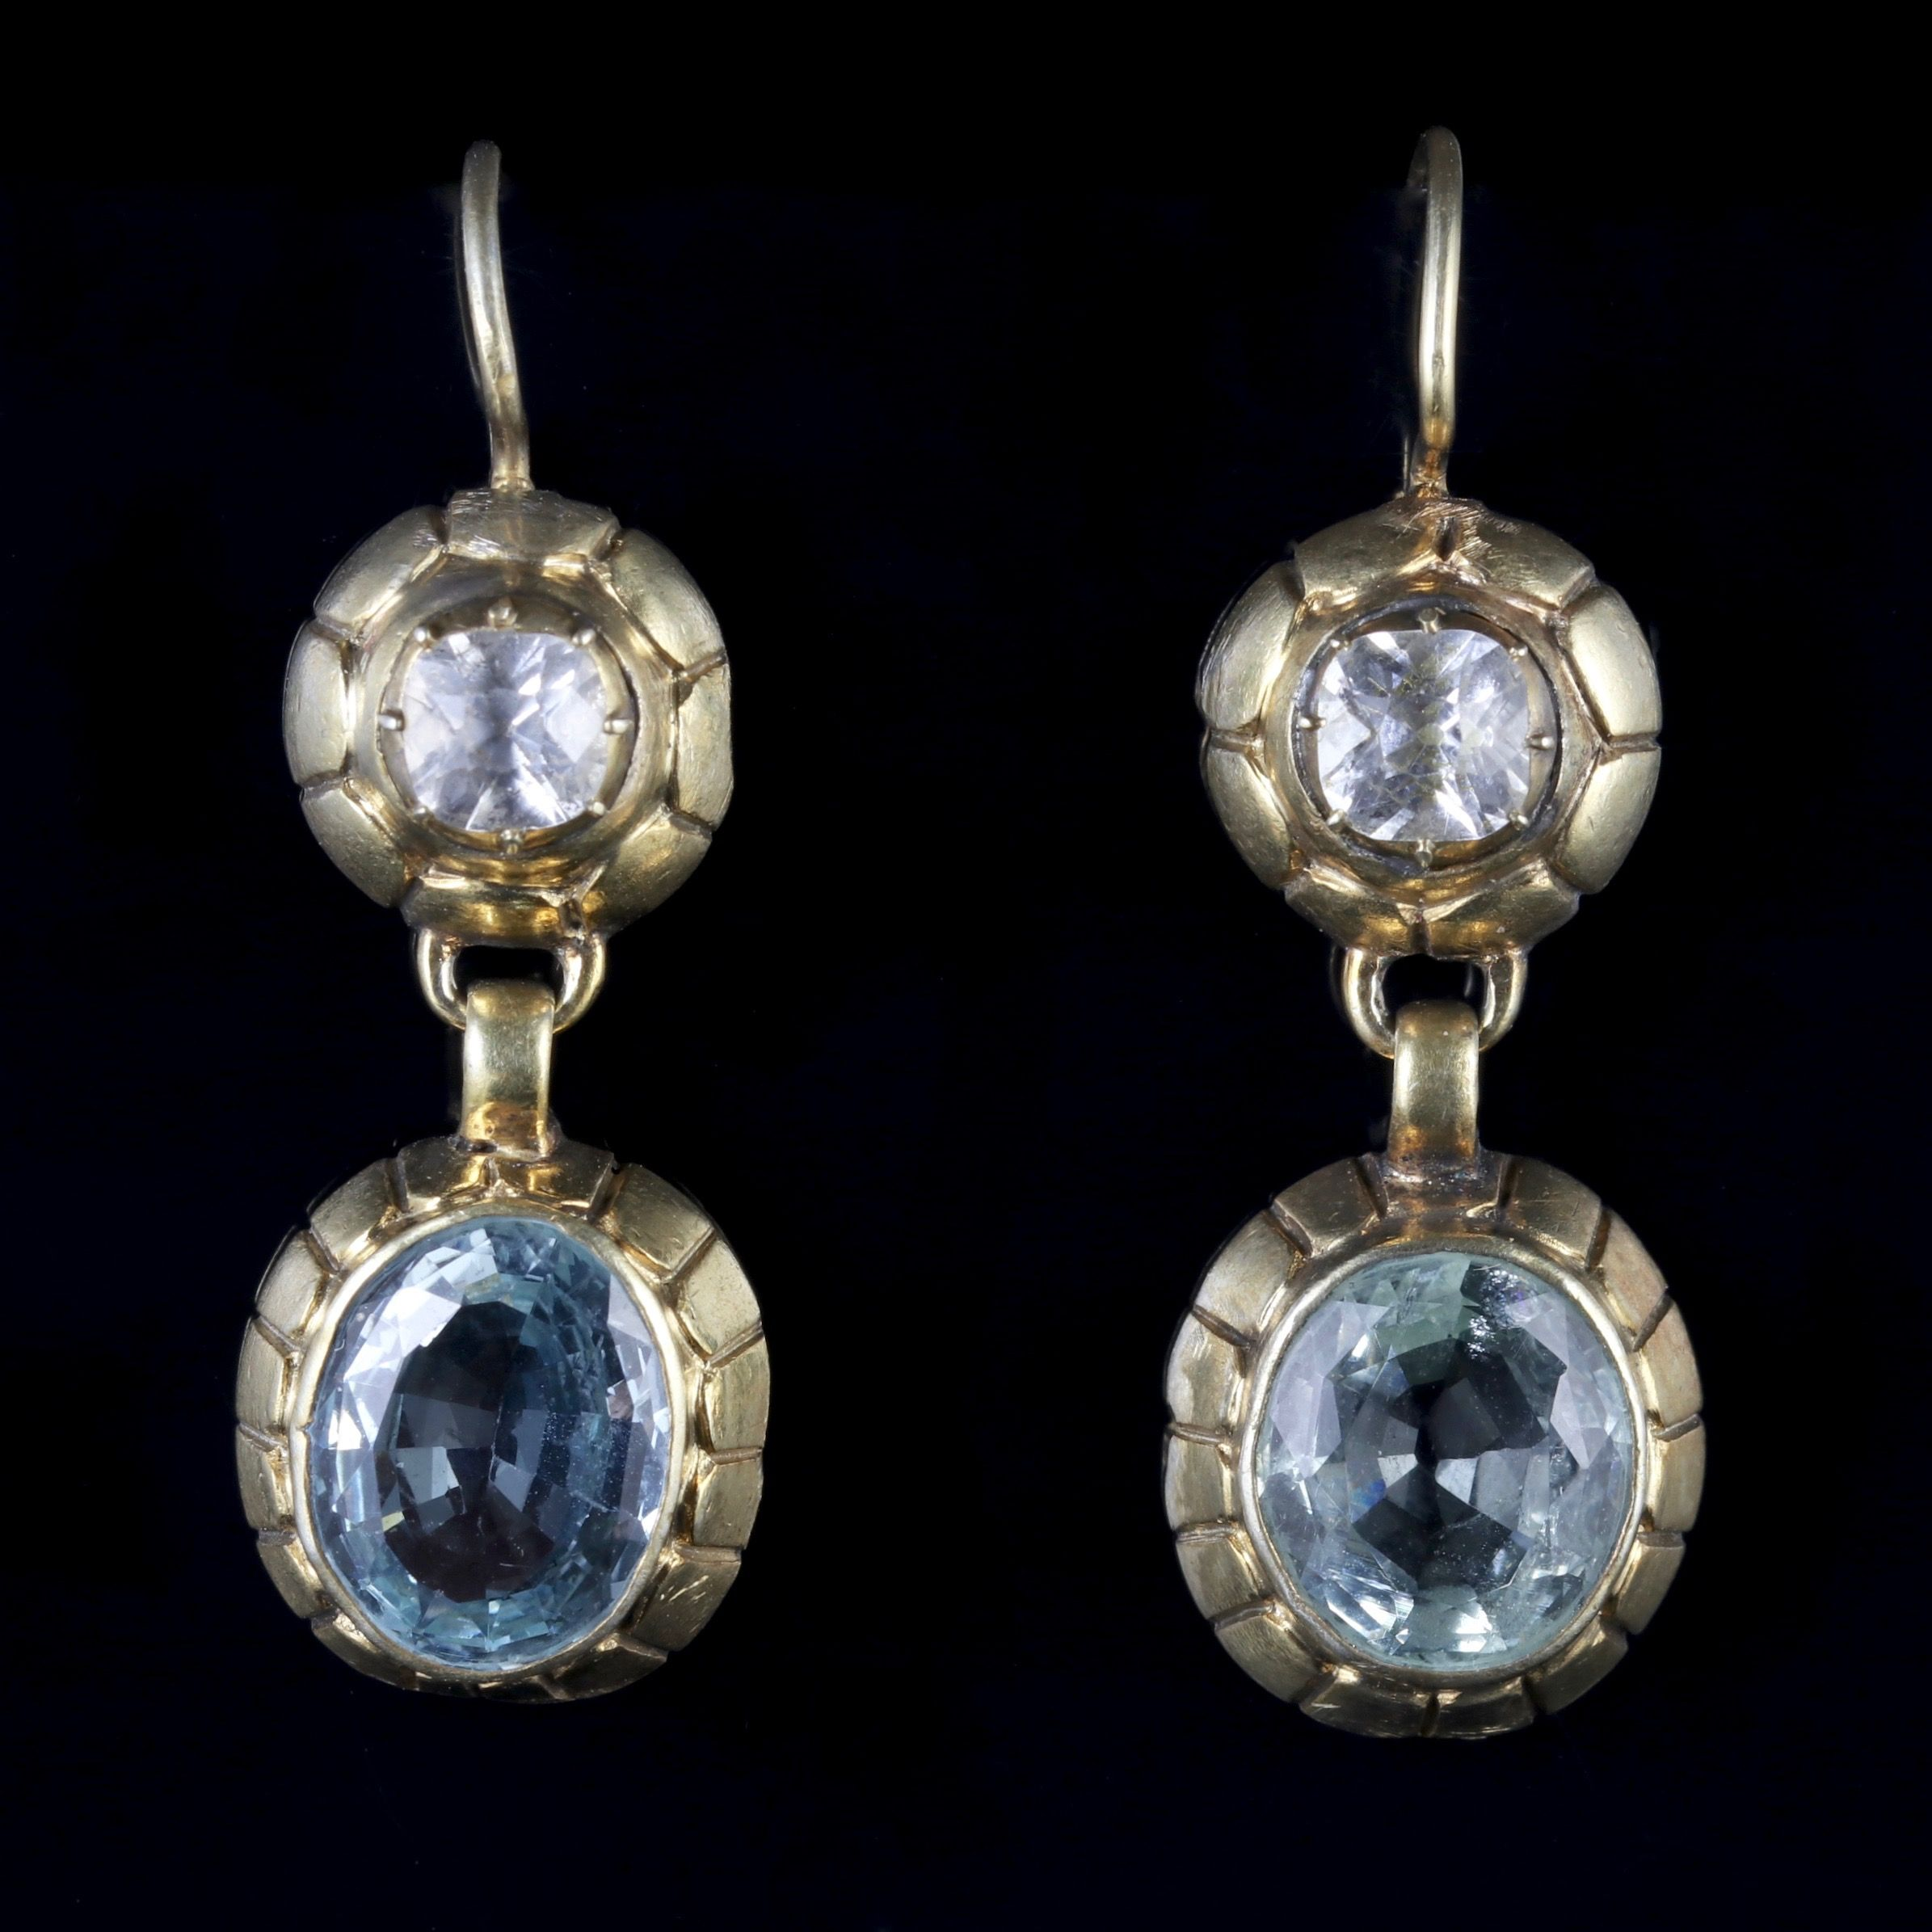 about envious ro earrings rococo ca marie wonderful be diamonds gold would itm diamond diamant silver des antike antoinette antique ohrringe france wunderbare a of rose the